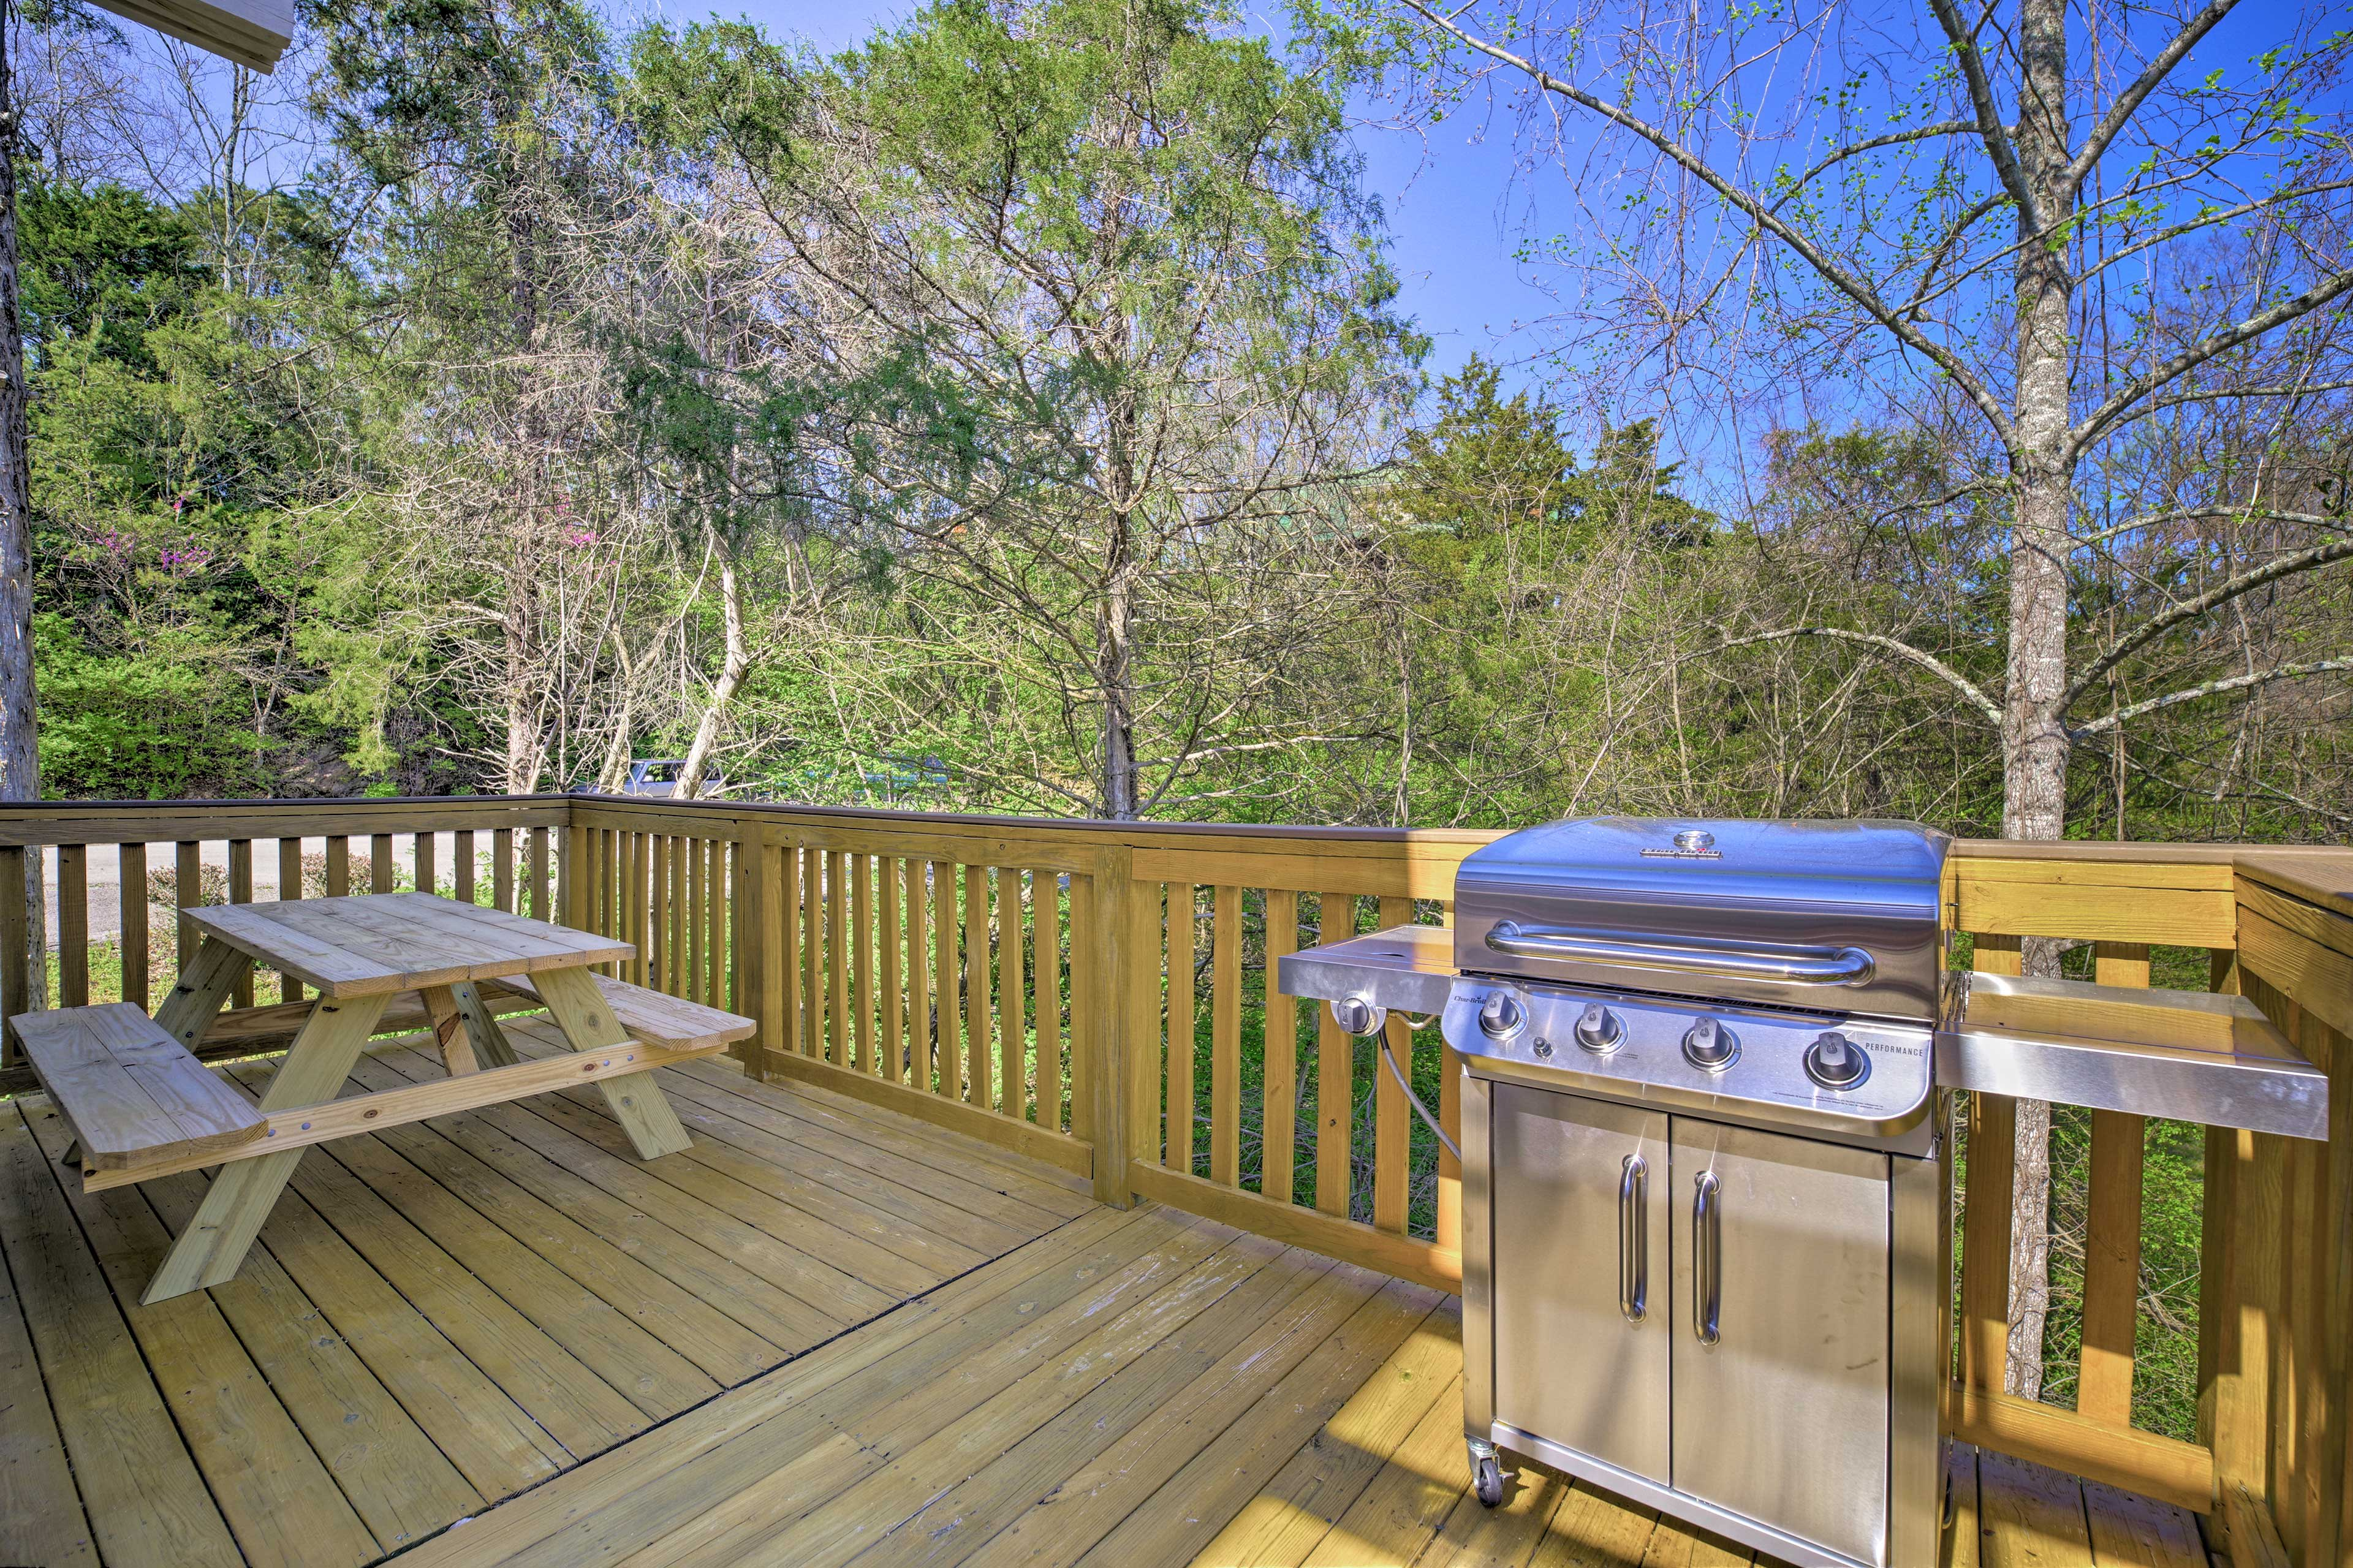 Fire up the gas grill and enjoy a family cookout!